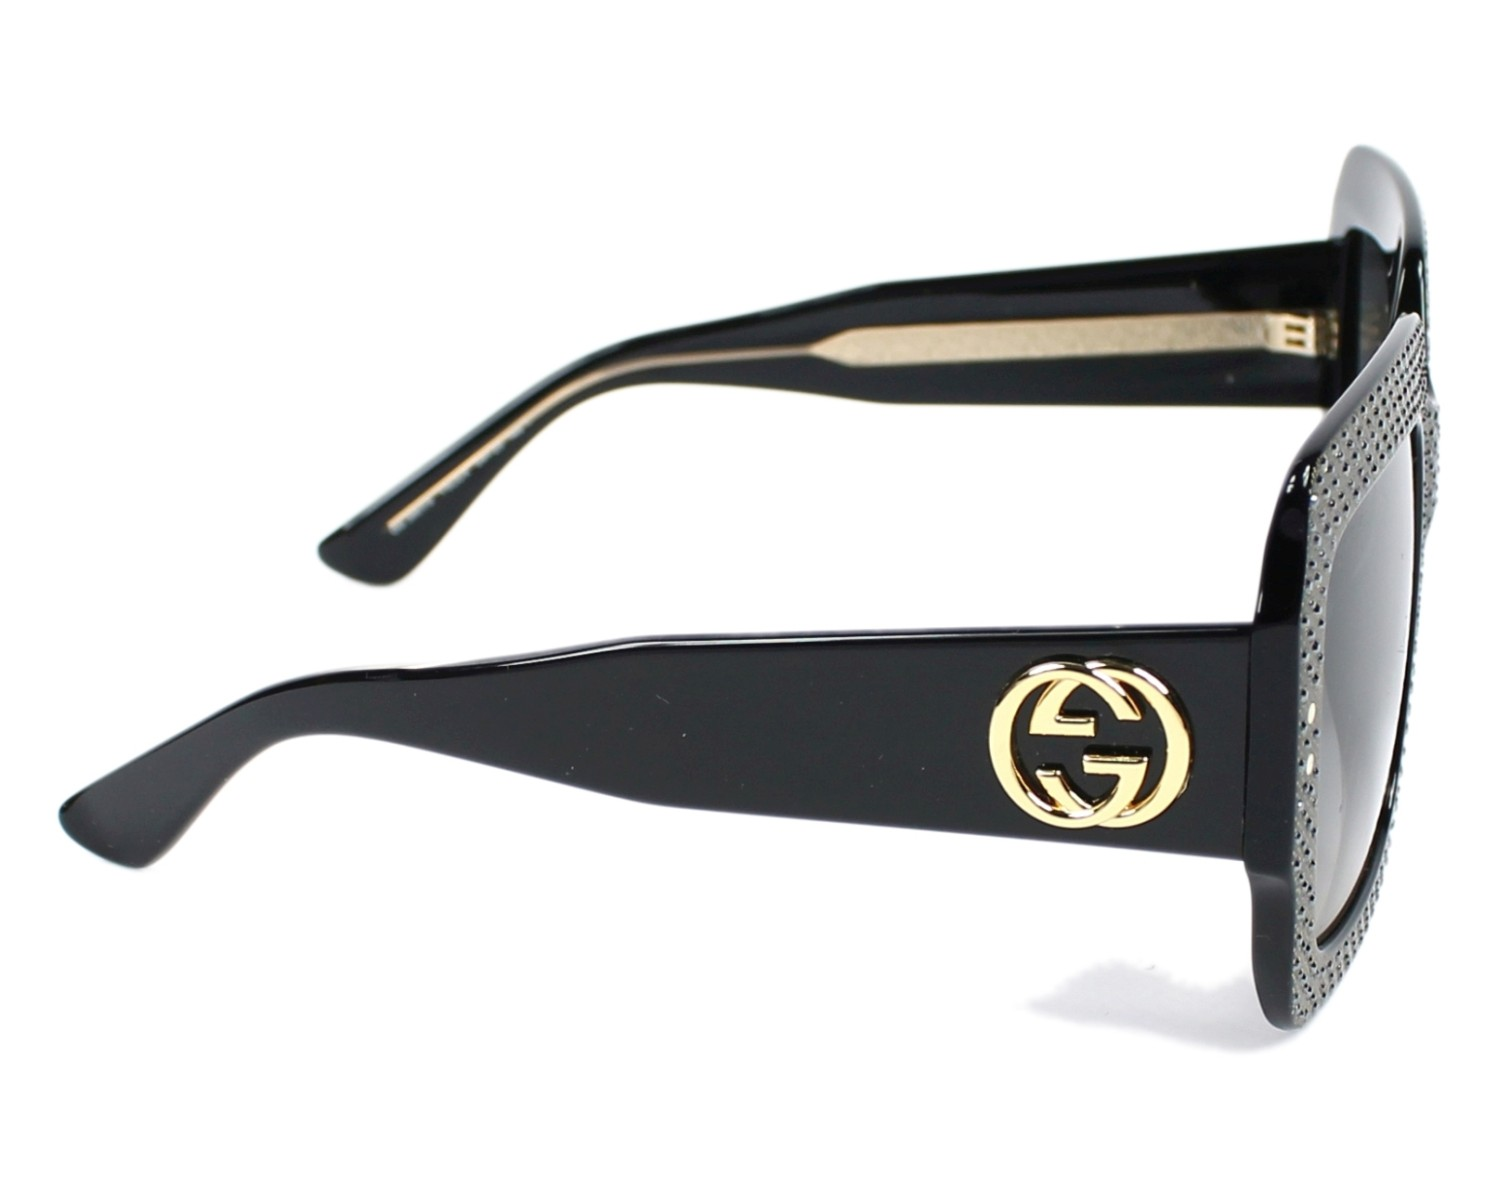 6b12b4f7f43ee thumbnail Sunglasses Gucci GG-3861-S Y6C DX - Black Crystal side view